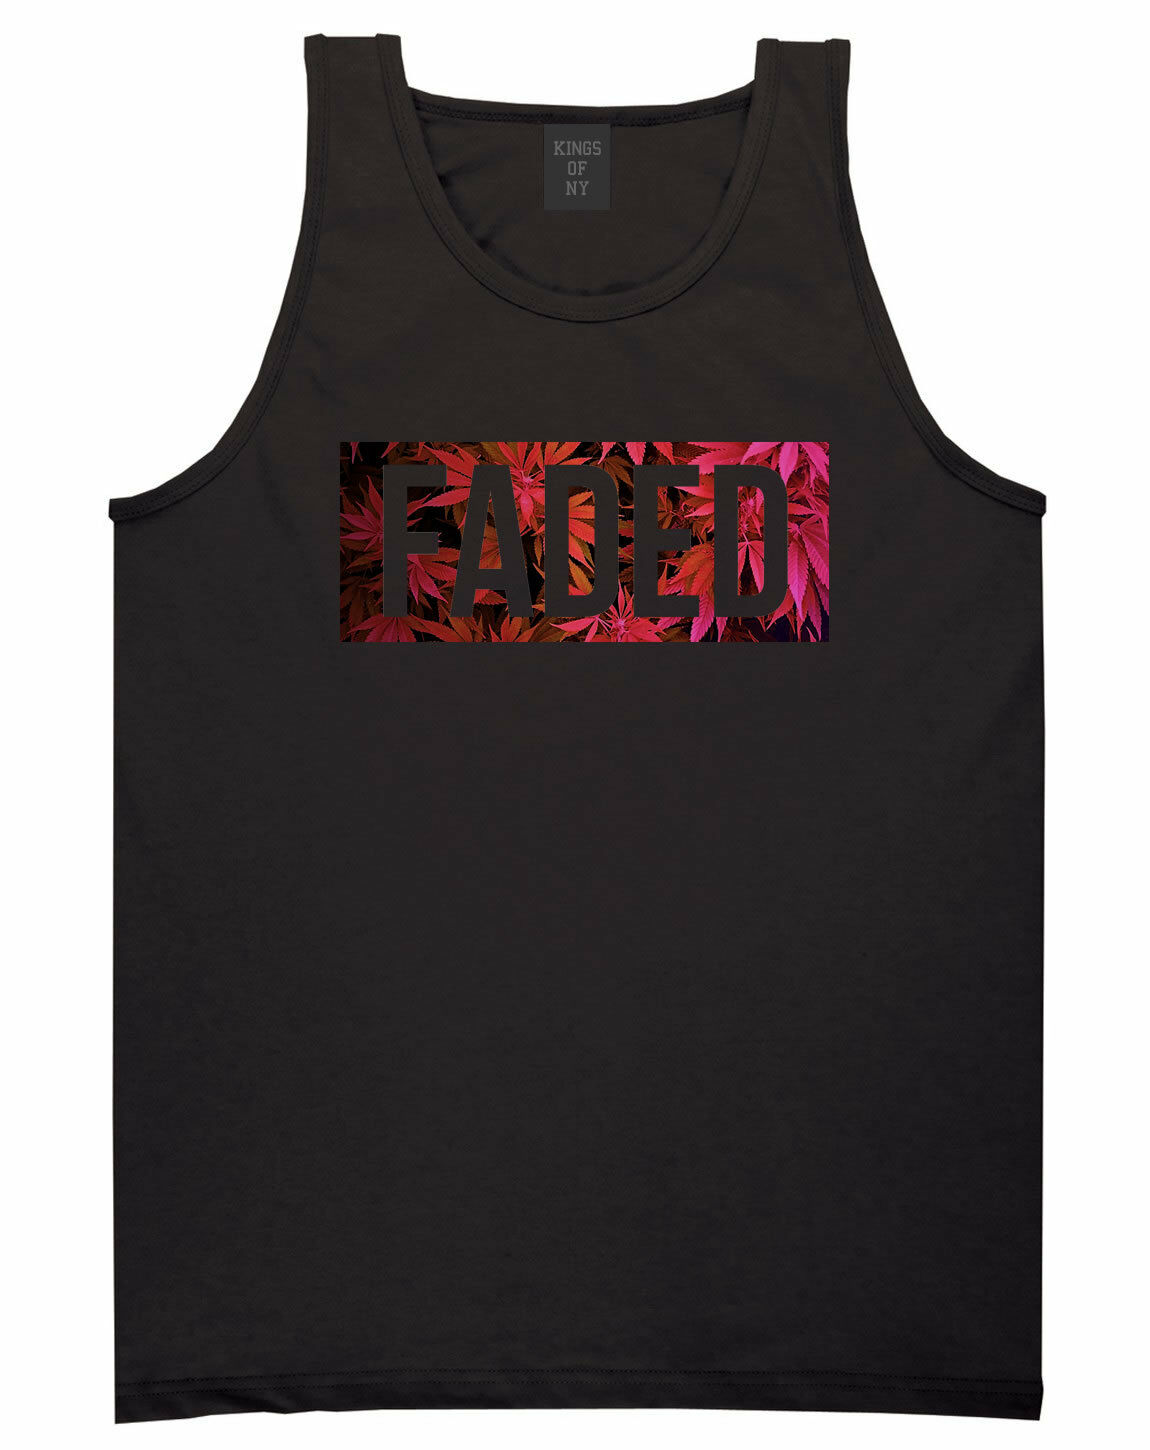 Kings Of NY Faded Pink Weed Marijuana Print Tank Top Jersey 1